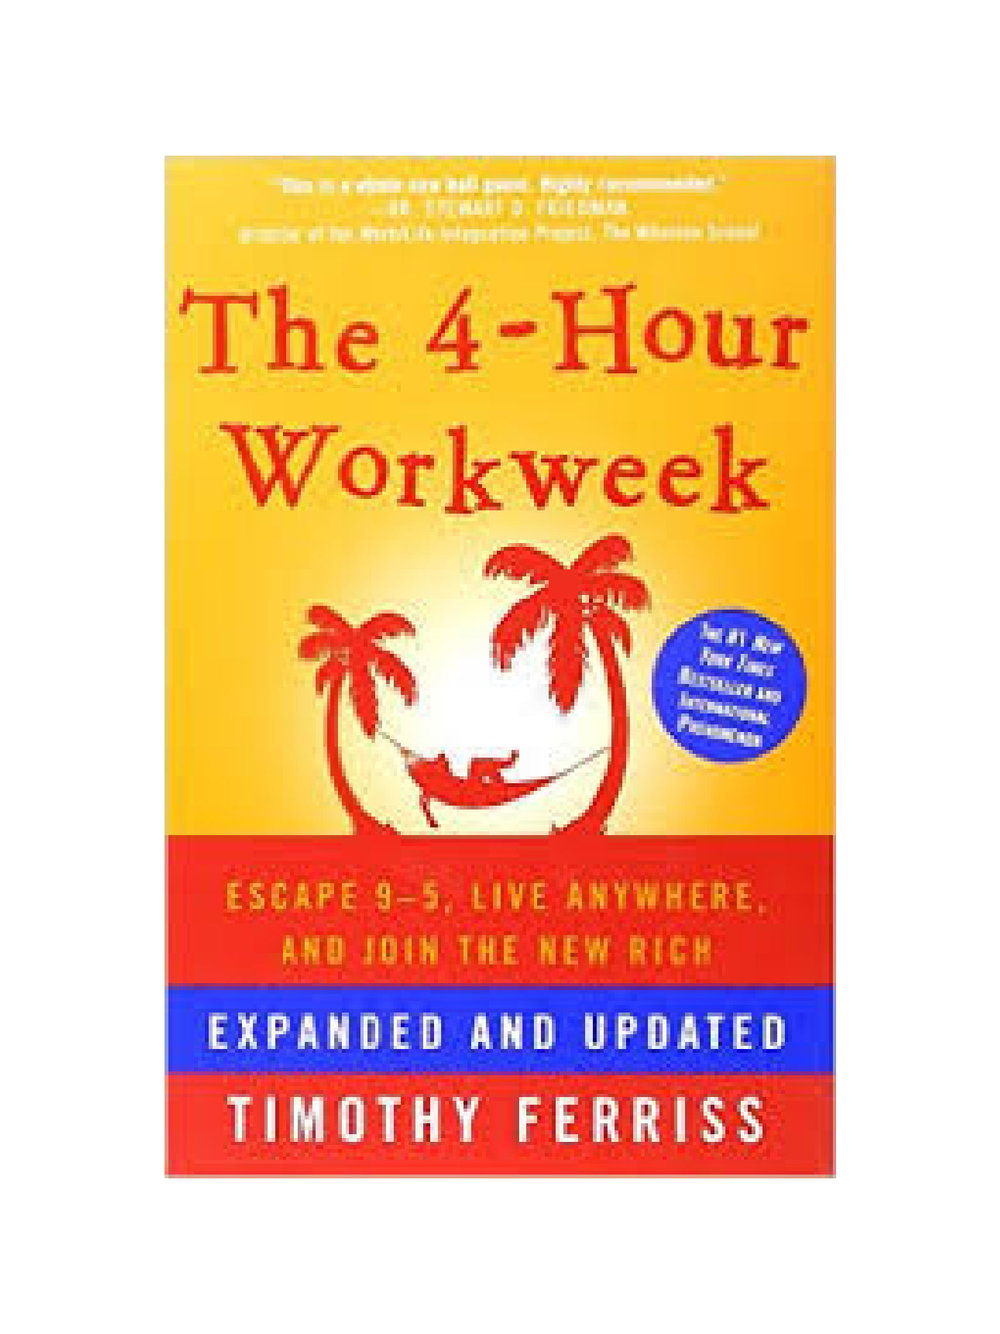 THE 4 HOUR WORKWEEK buy now